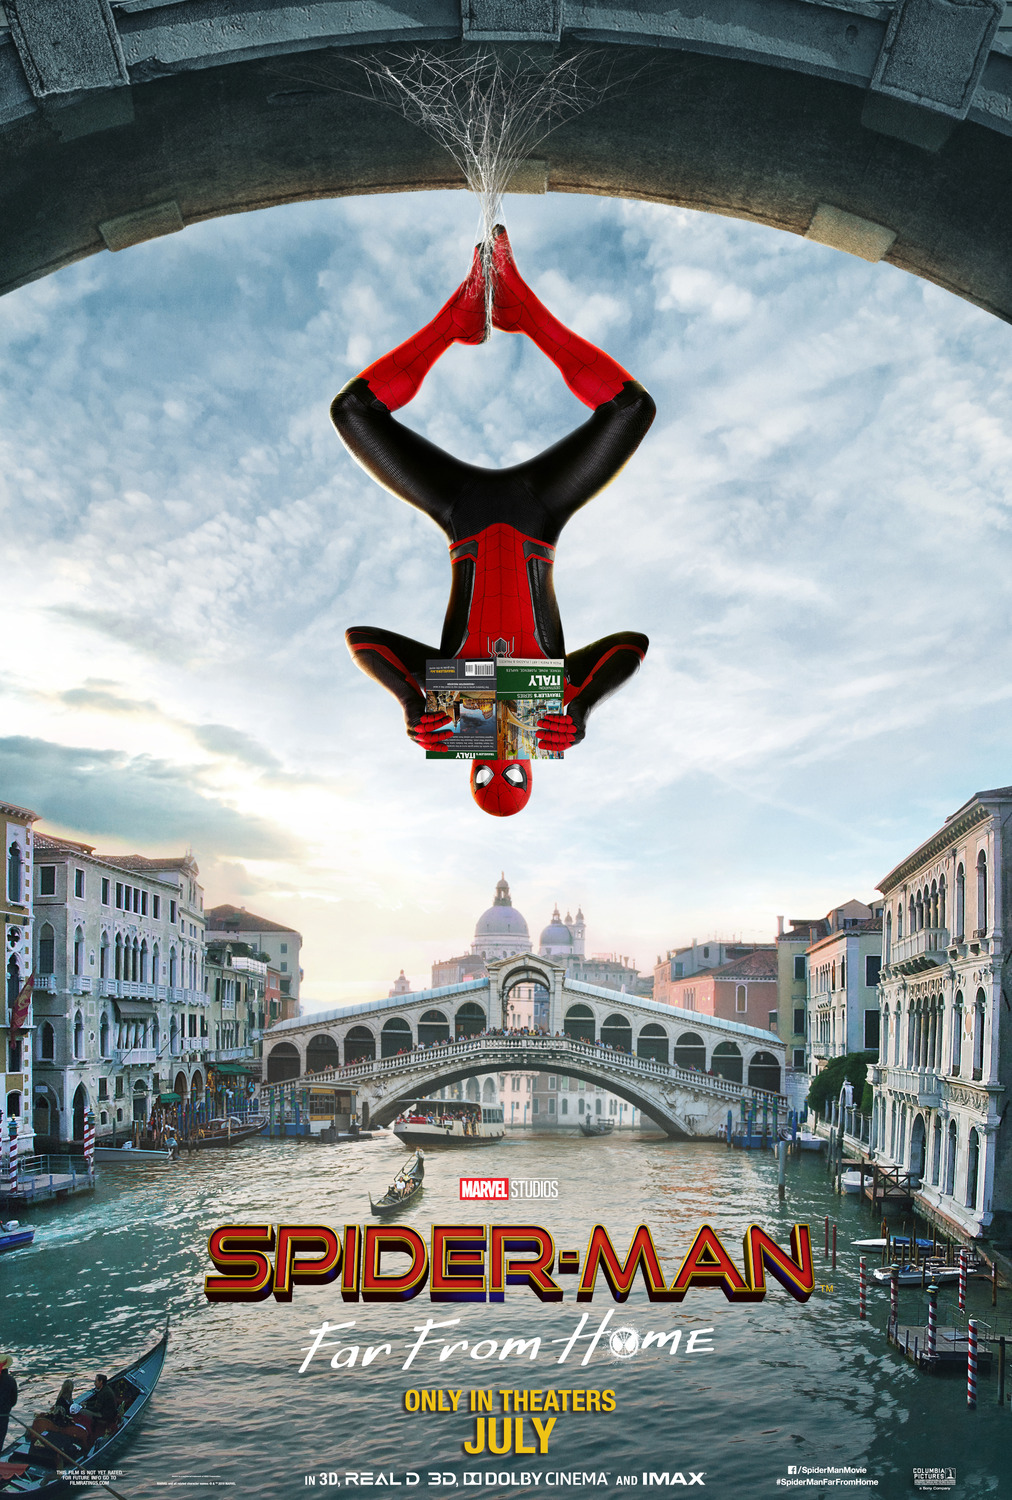 Spiderman Far From Home teaser poster